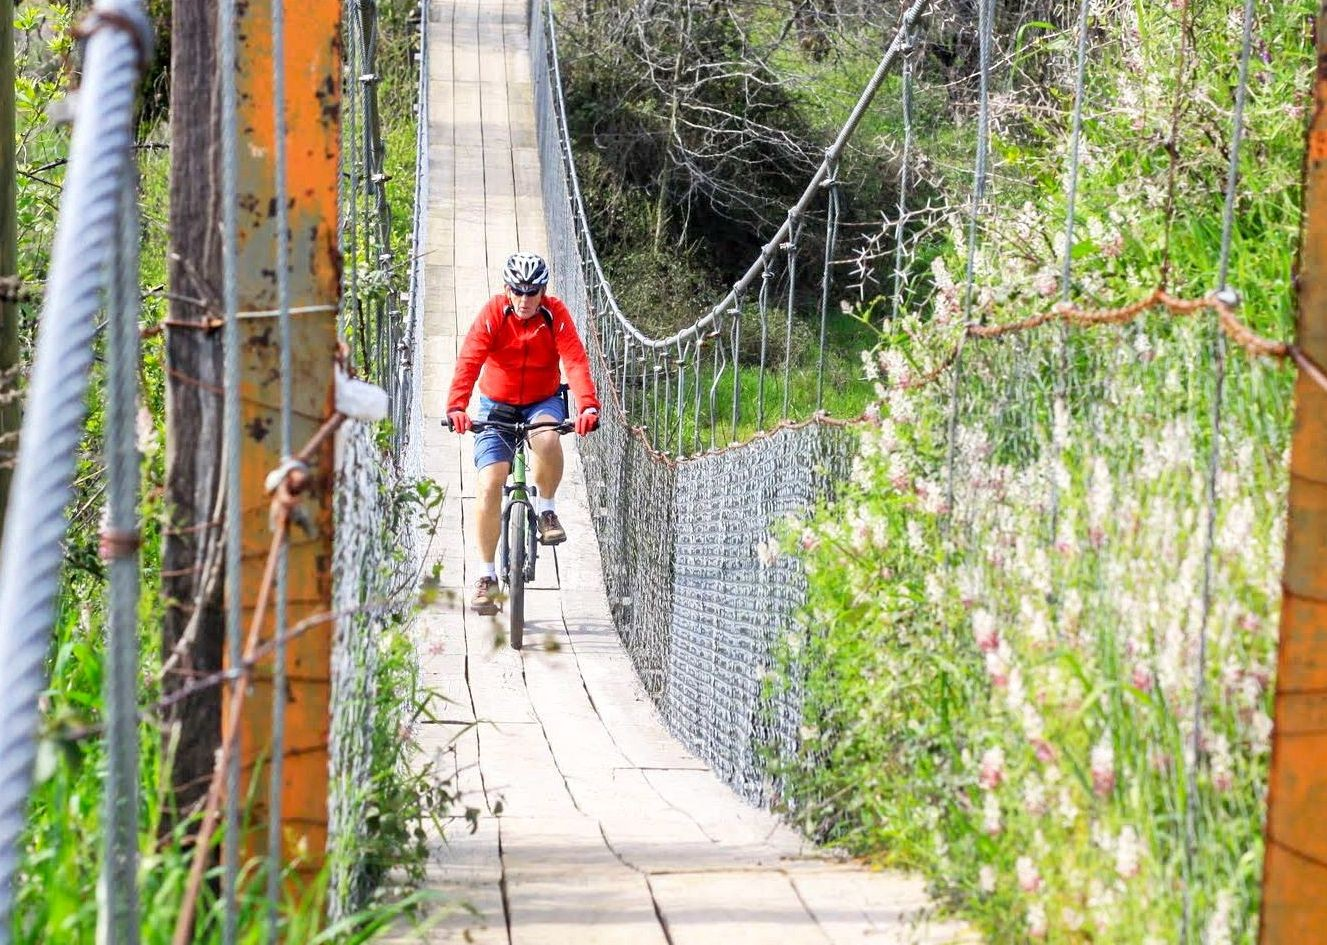 _Holiday.746.20267.jpg - Chile - Wine Country - Cycling Adventures